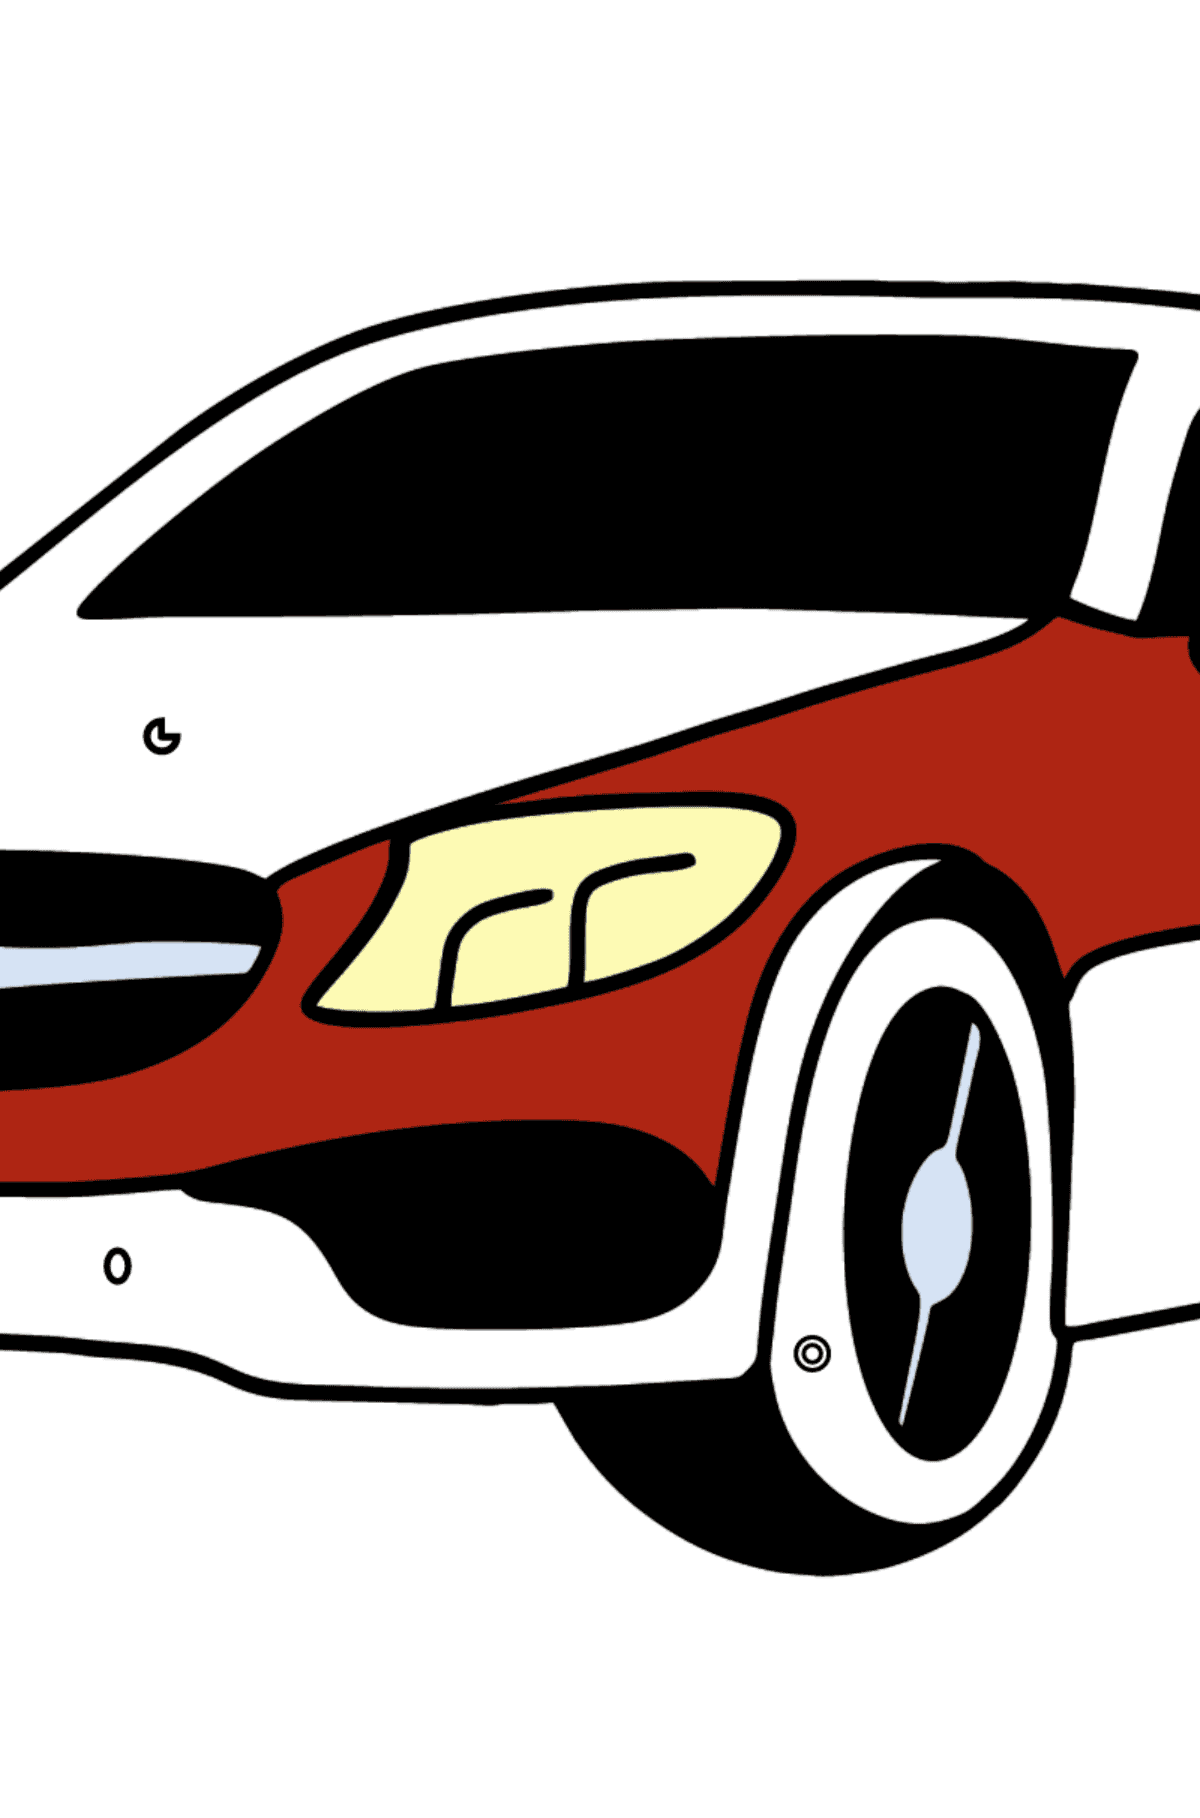 Mercedes C63 AMG car coloring page - Coloring by Geometric Shapes for Kids